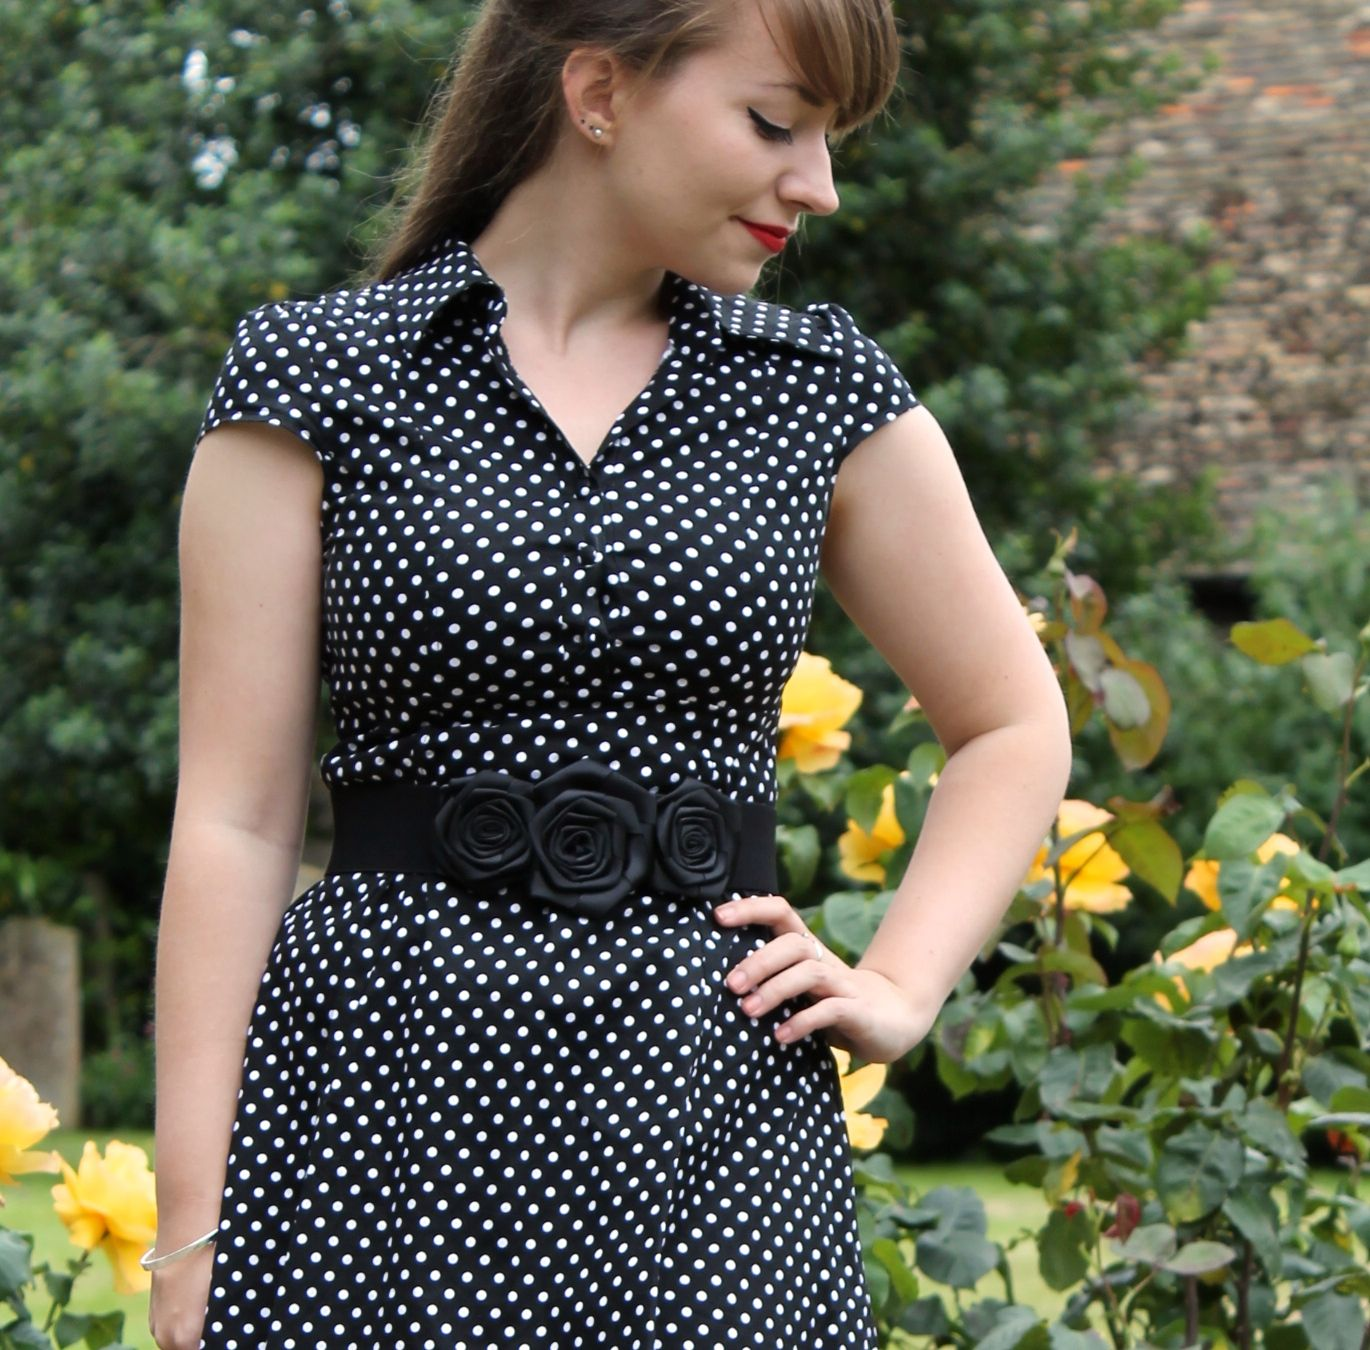 Pin-up style polka dot shirt dress